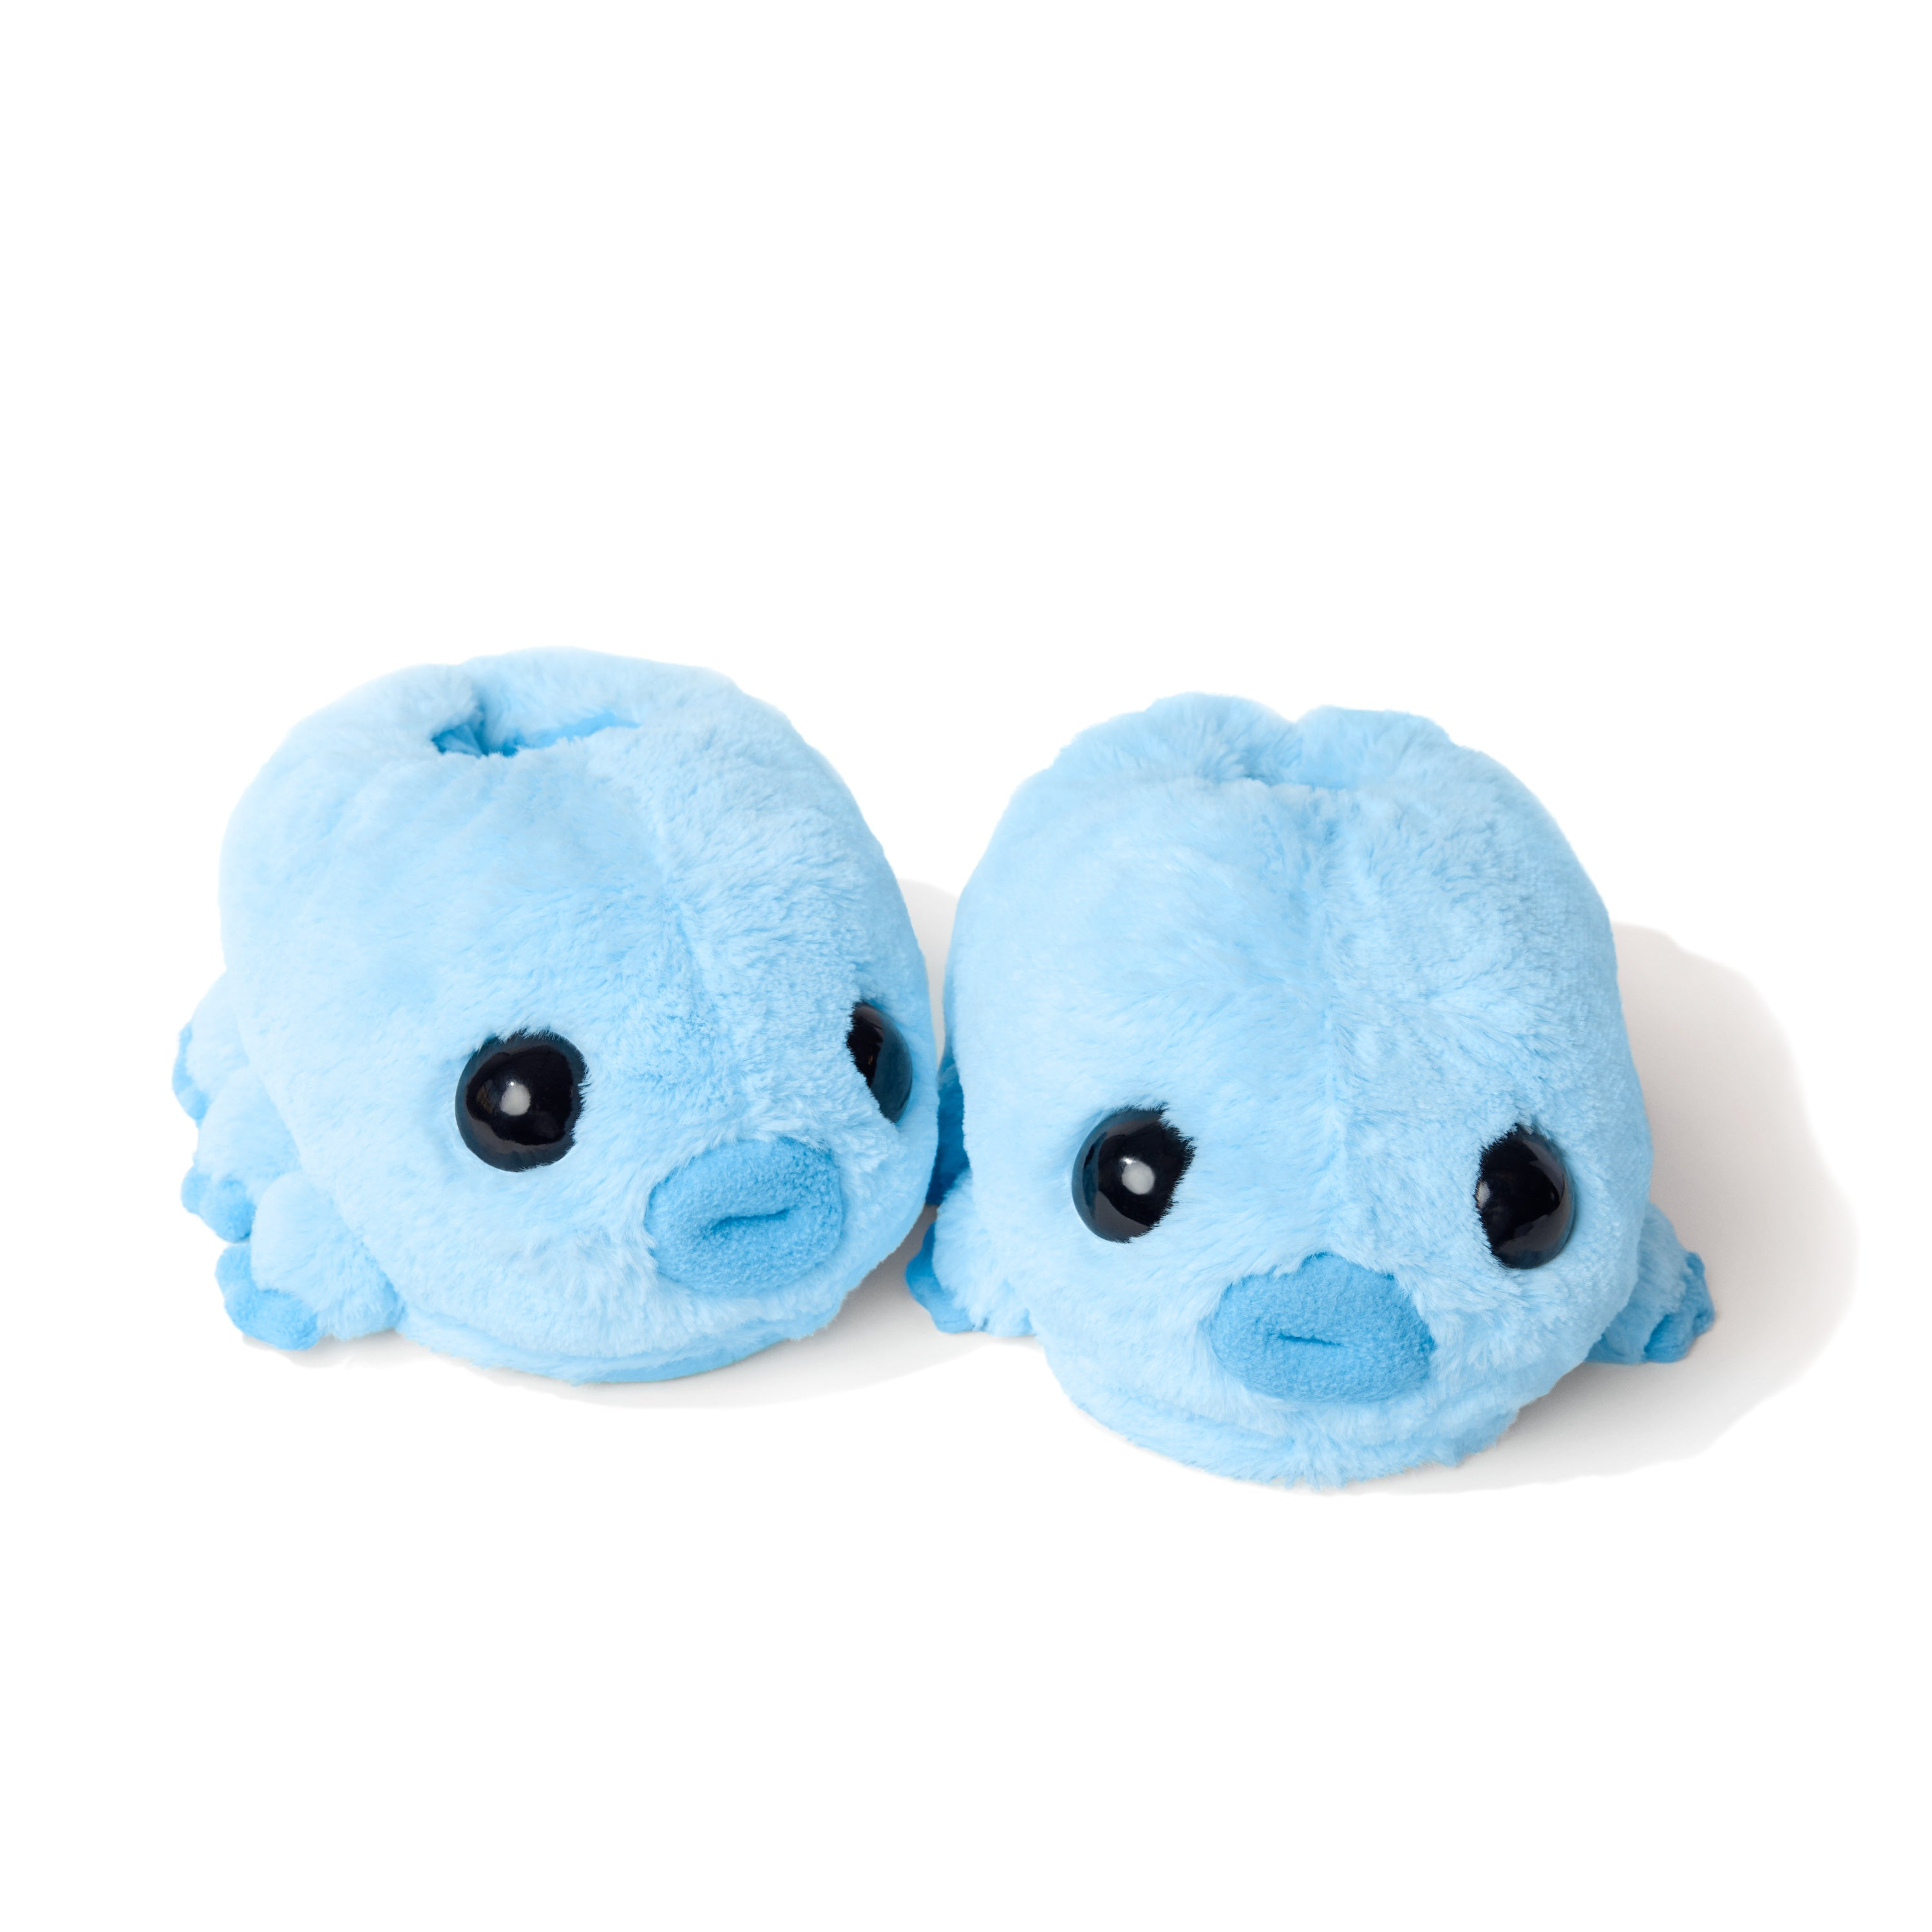 Water Bear fuzzy slippers